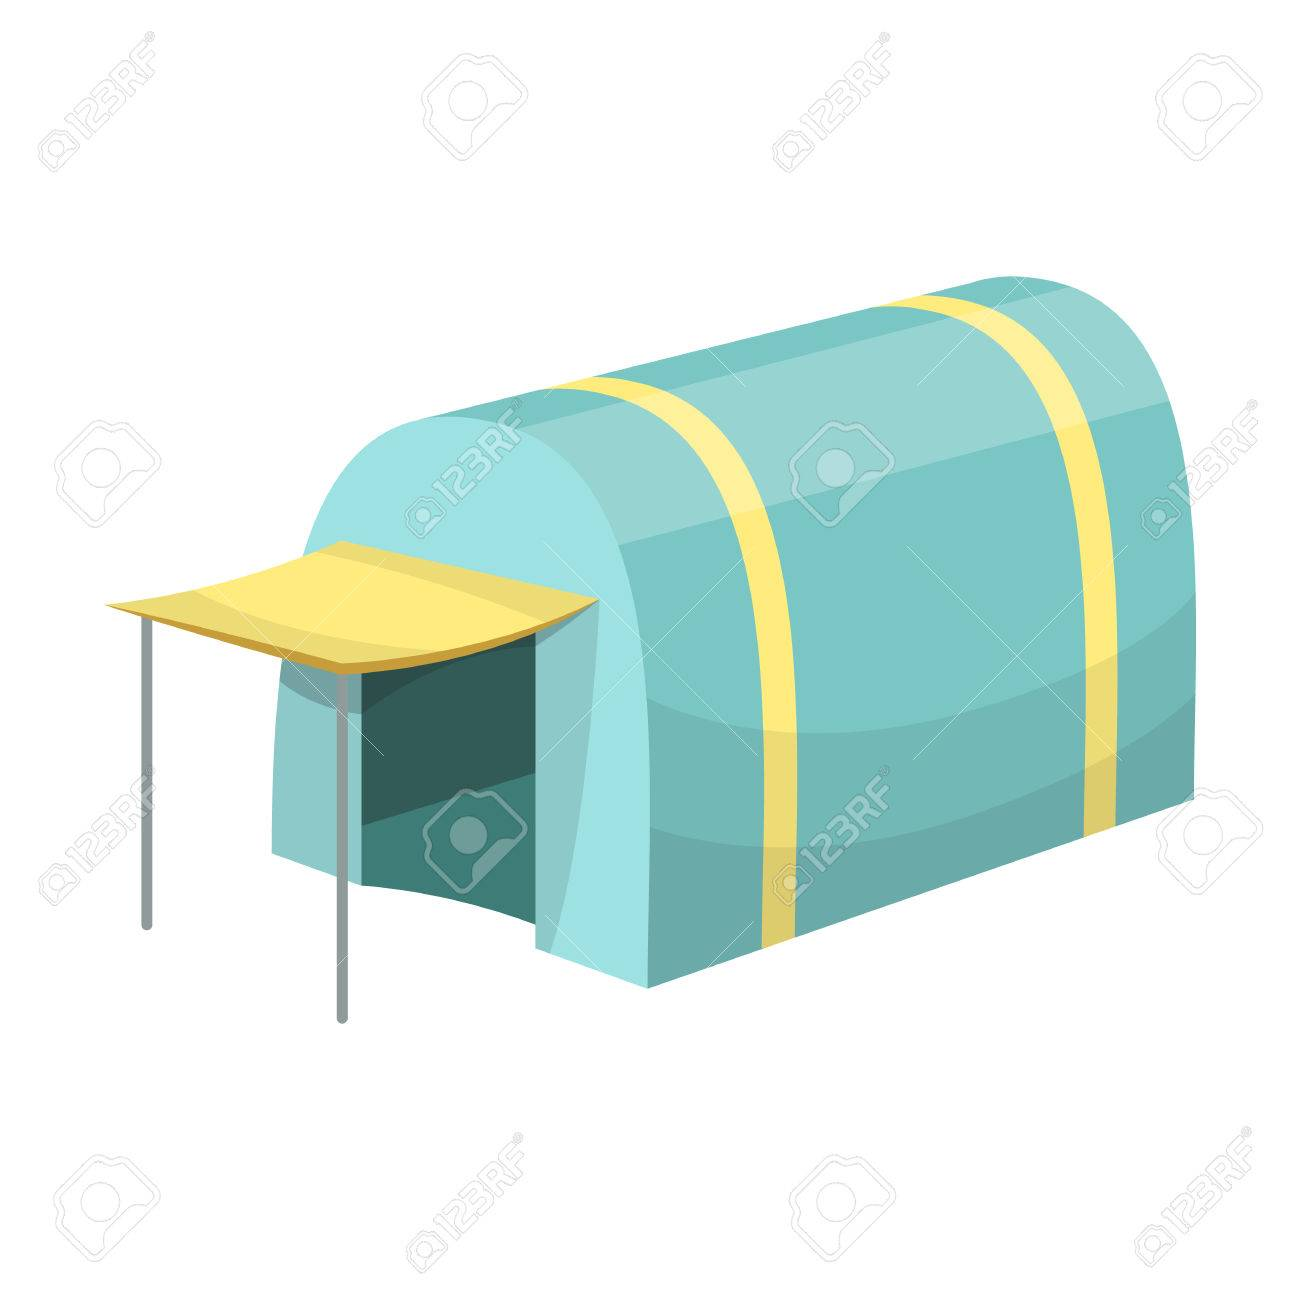 Tent With AwningTent Single Icon In Cartoon Style Vector Symbol Stock Illustration